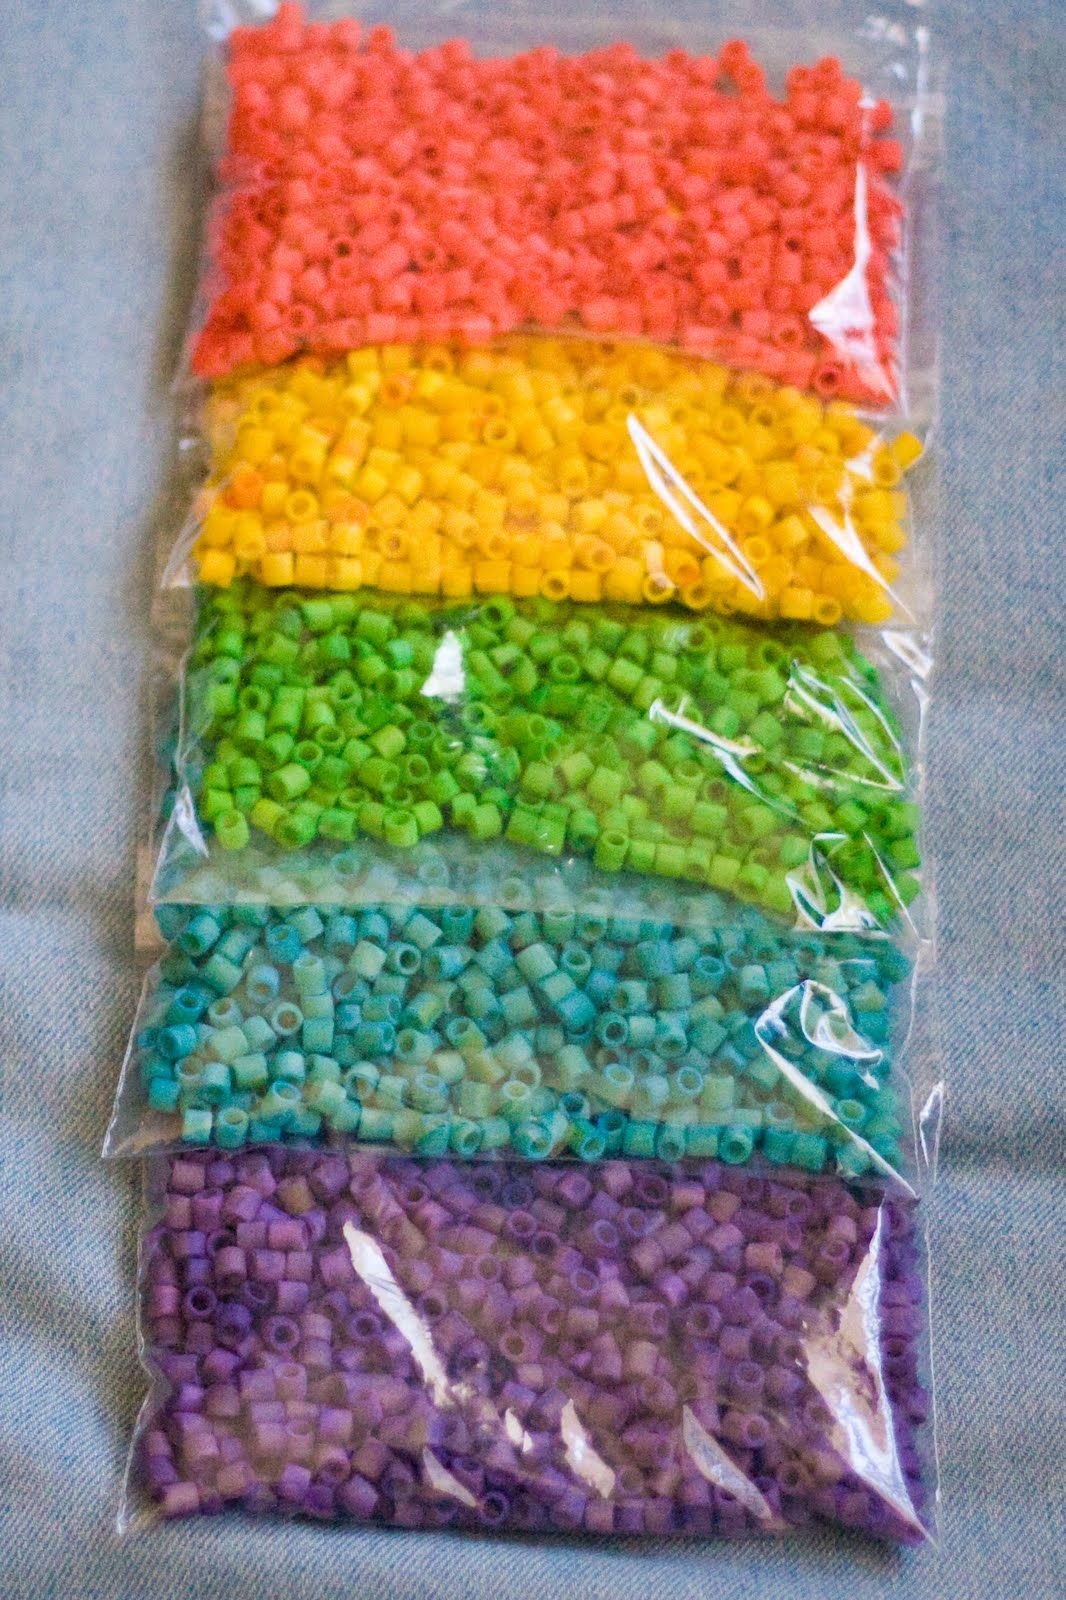 diy colored pasta beads :: via my name is snickerdoodle